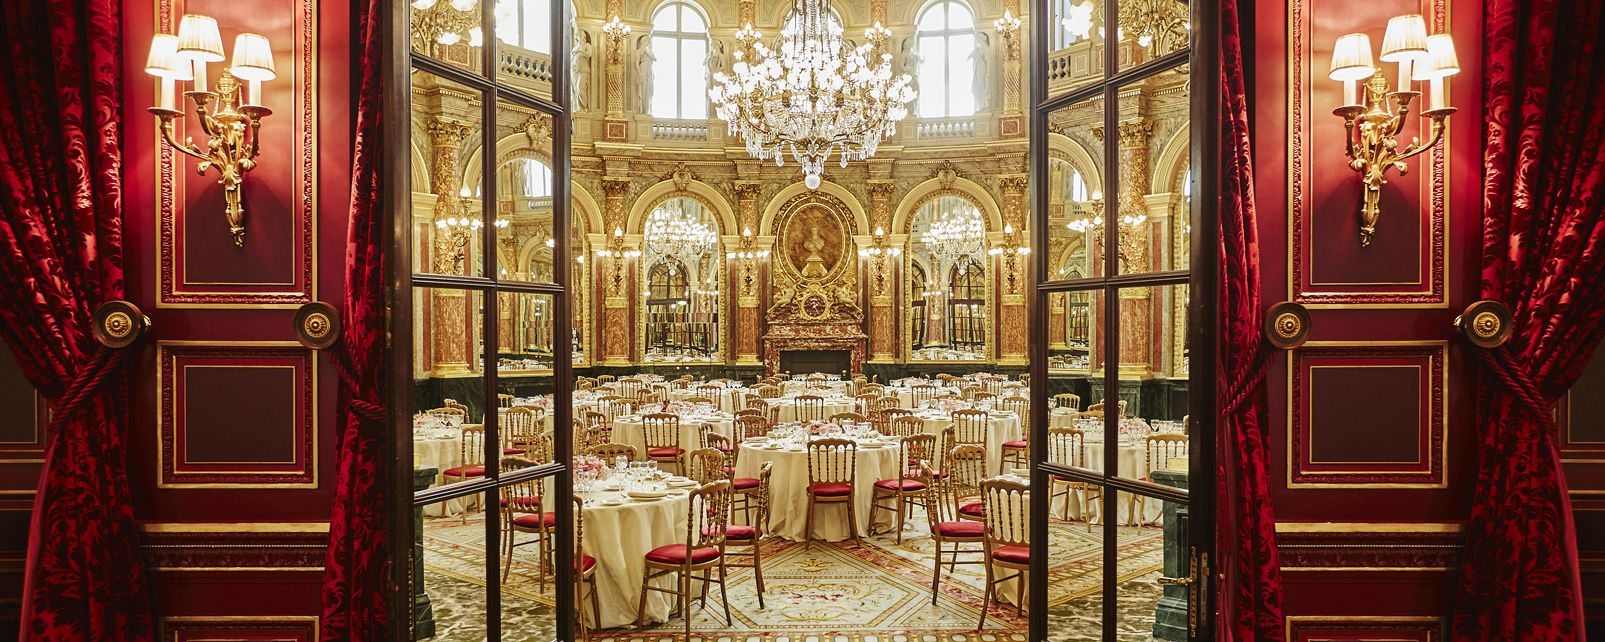 Hotel InterContinental Paris Le Grand Hotel